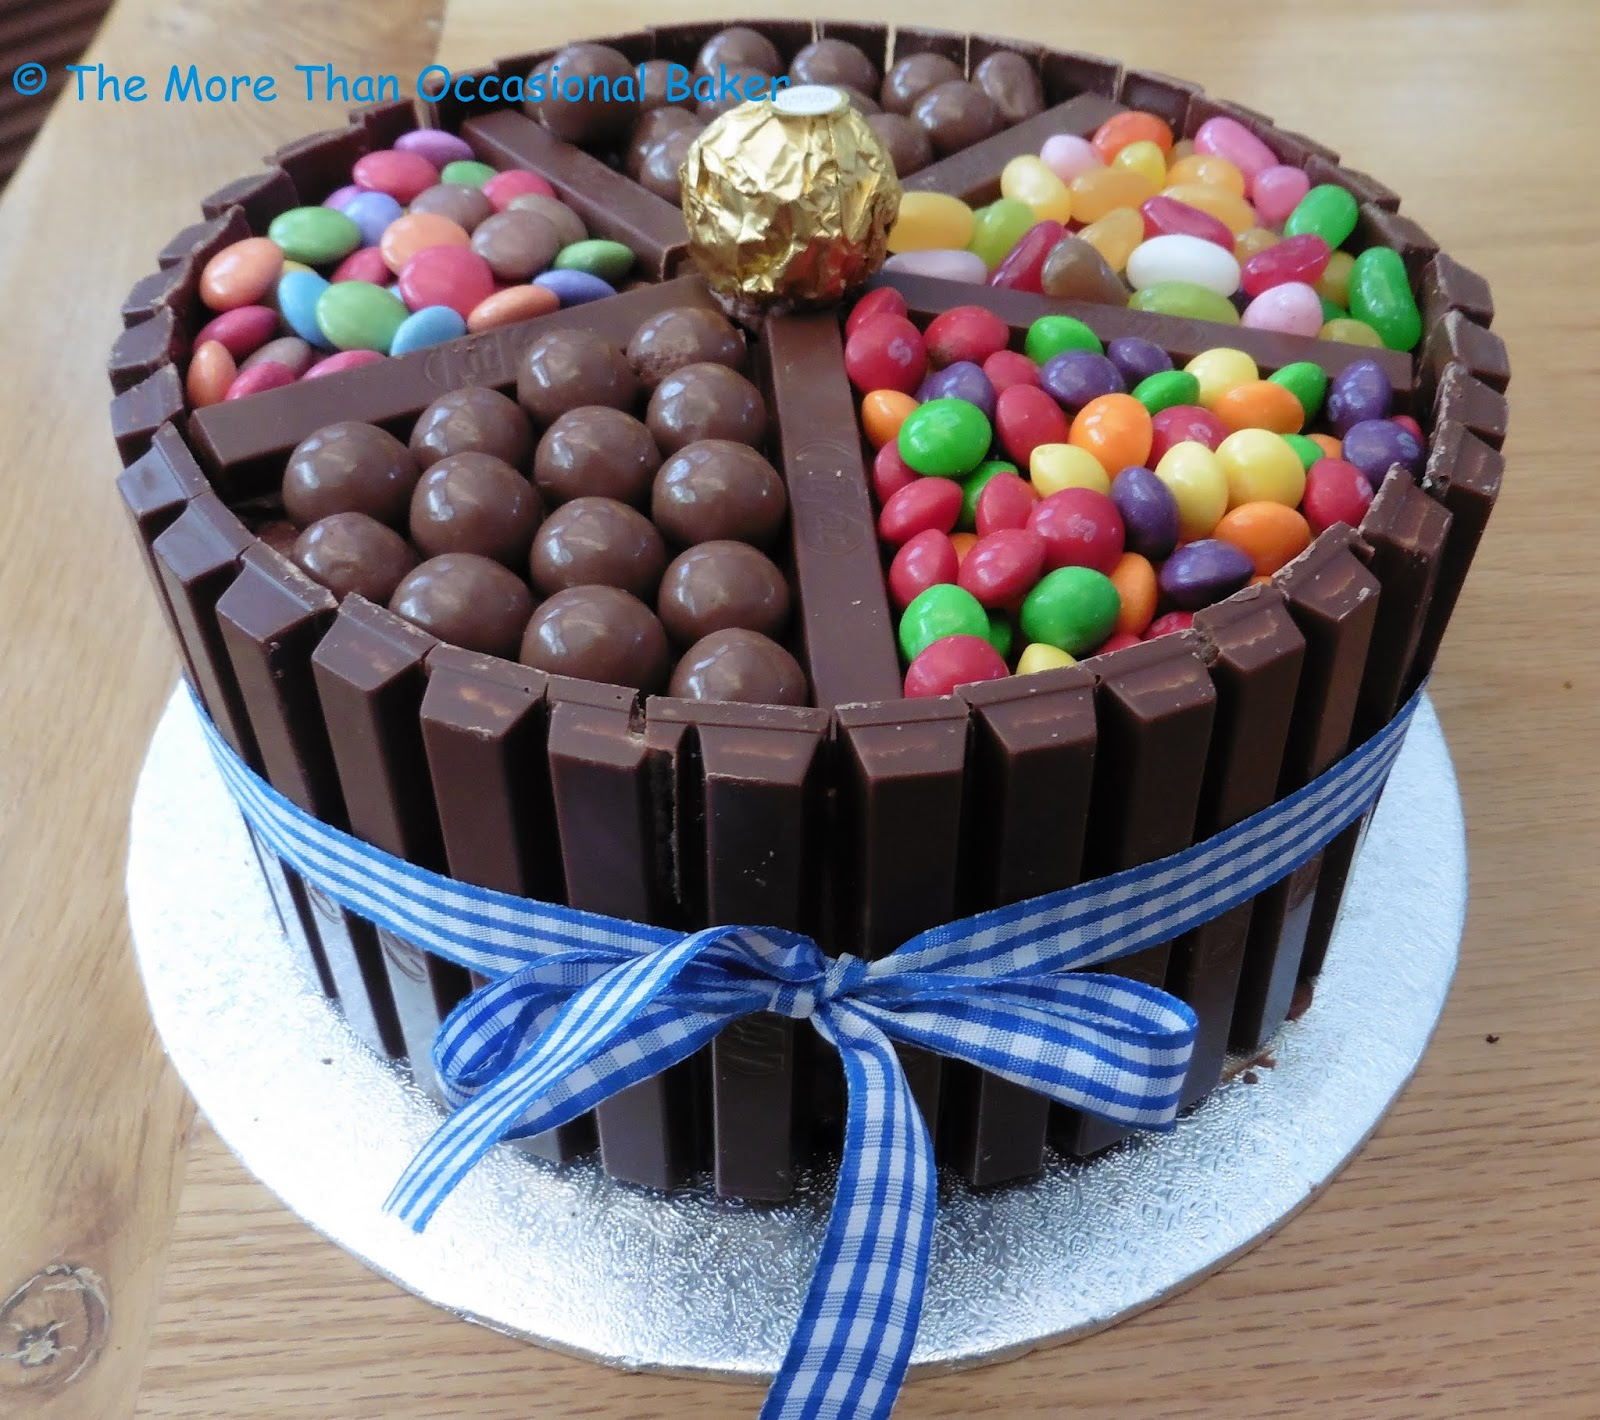 The More Than Occasional Baker Chocolate Sweet Shop Cake